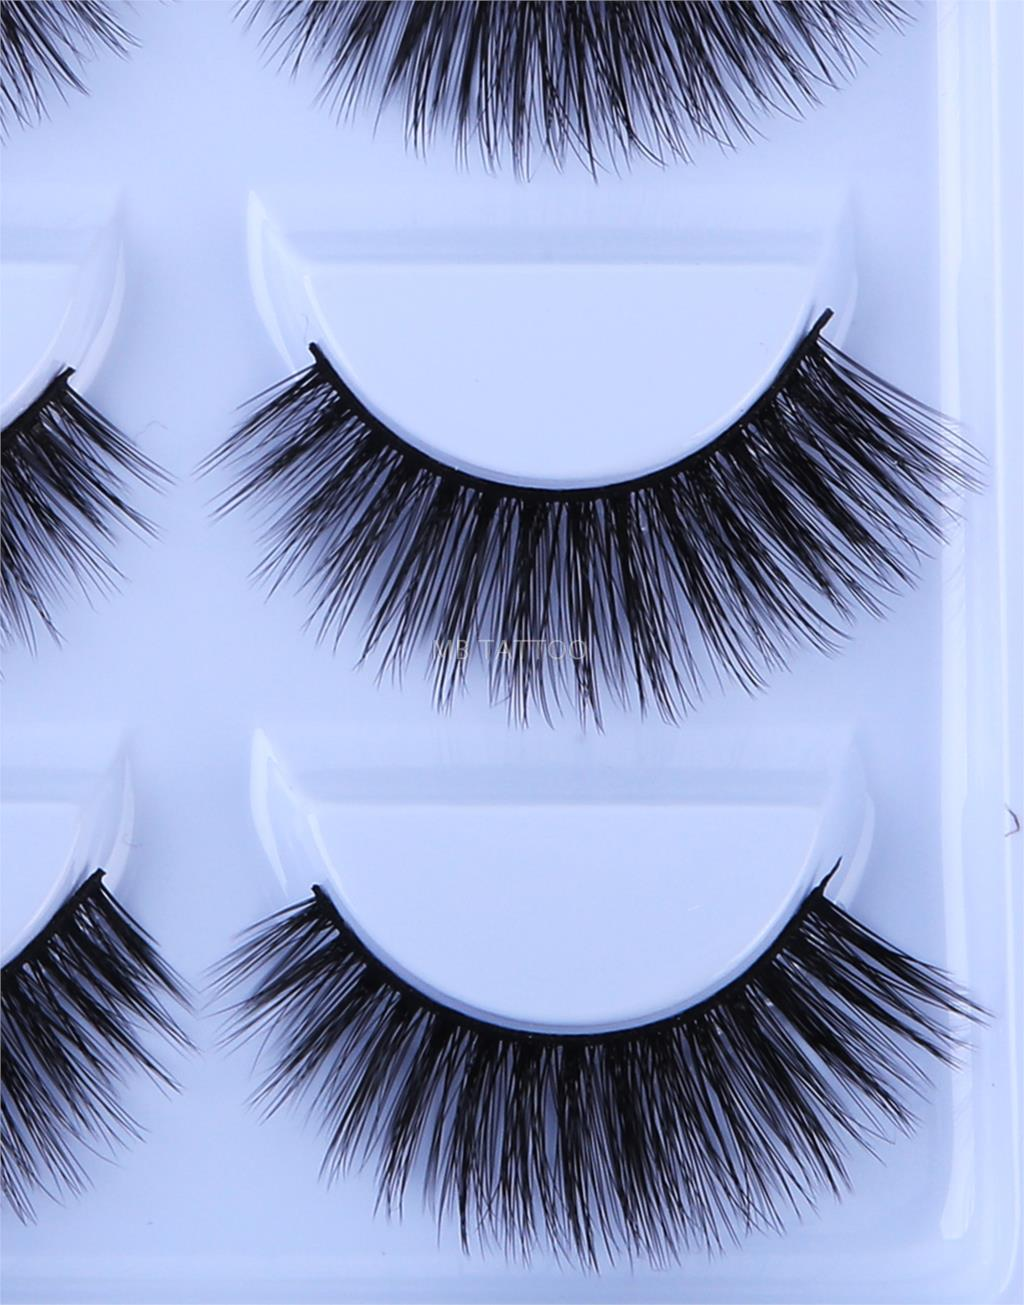 HTB1lv7QQ3HqK1RjSZFgq6y7JXXaP New 3D 5 Pairs Mink Eyelashes extension make up natural Long false eyelashes fake eye Lashes mink Makeup wholesale Lashes